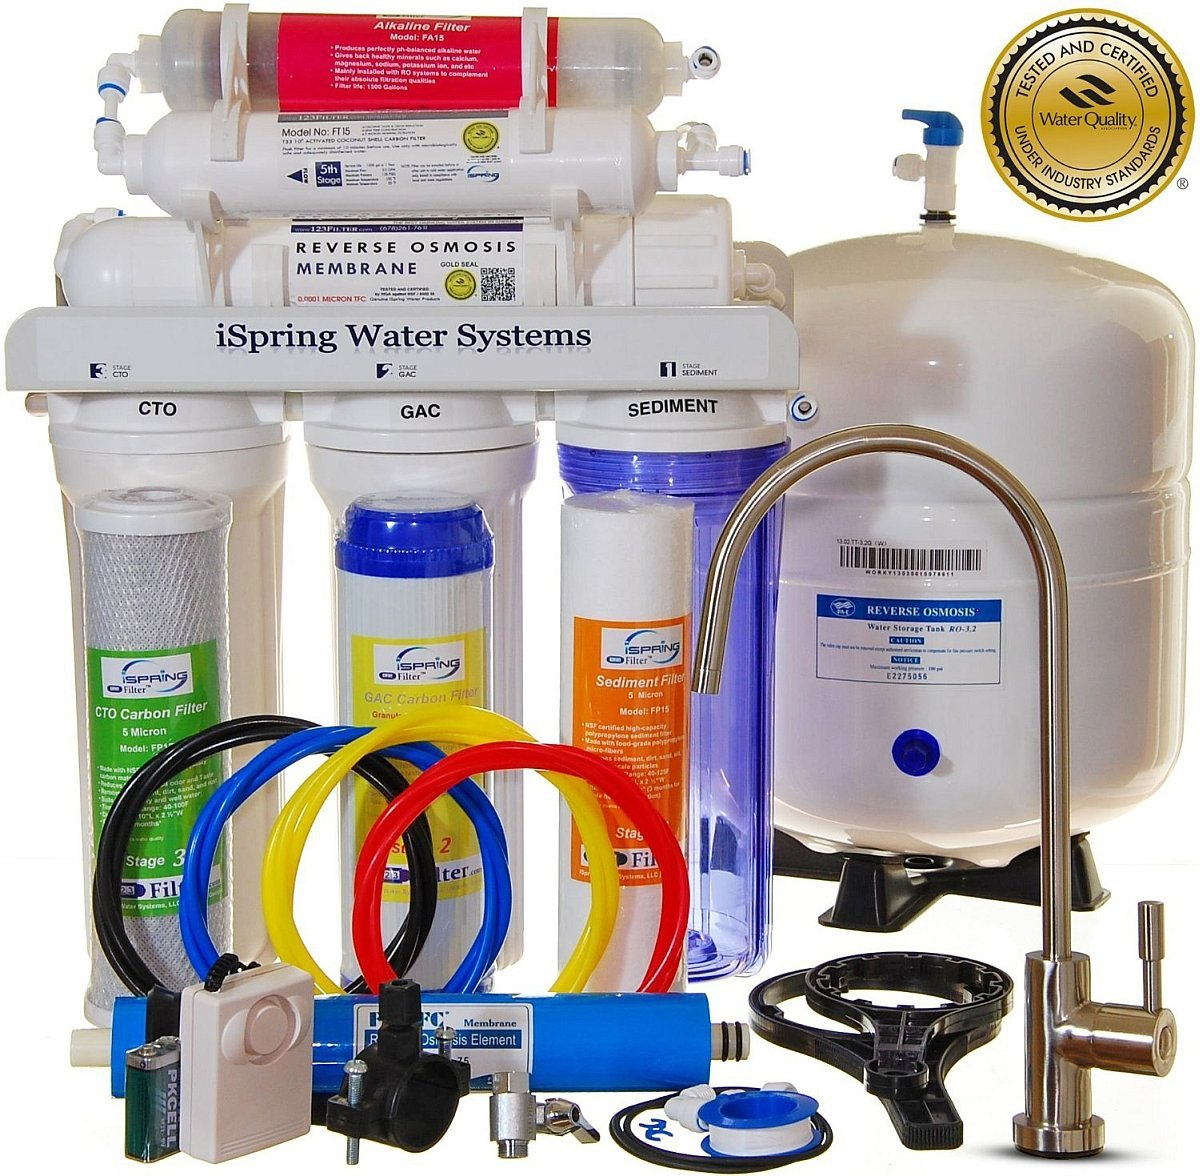 Home Water Filter System Top 5 Best Home Water Filter Reviews Water Purification Systems 2017